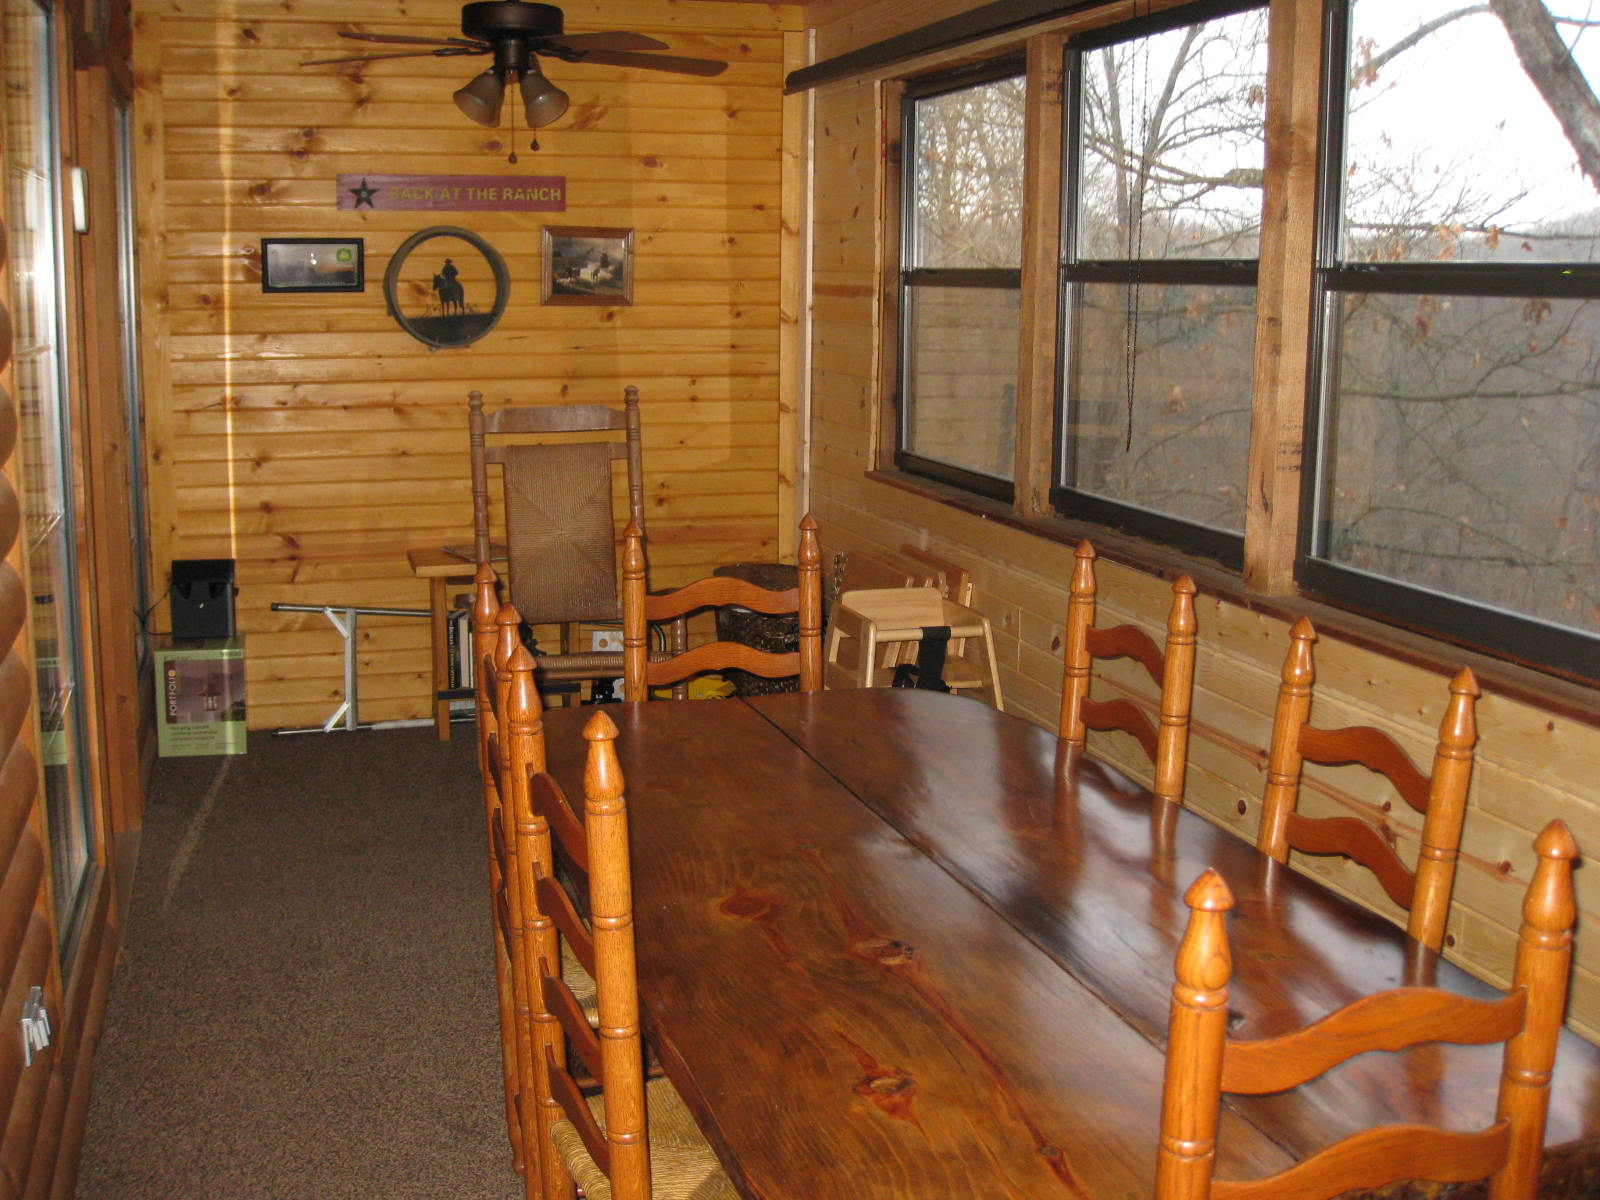 Genial Log U0026 Vacation Cabin Rentals In Branson, MO | Branson Weekend Condo Rentals